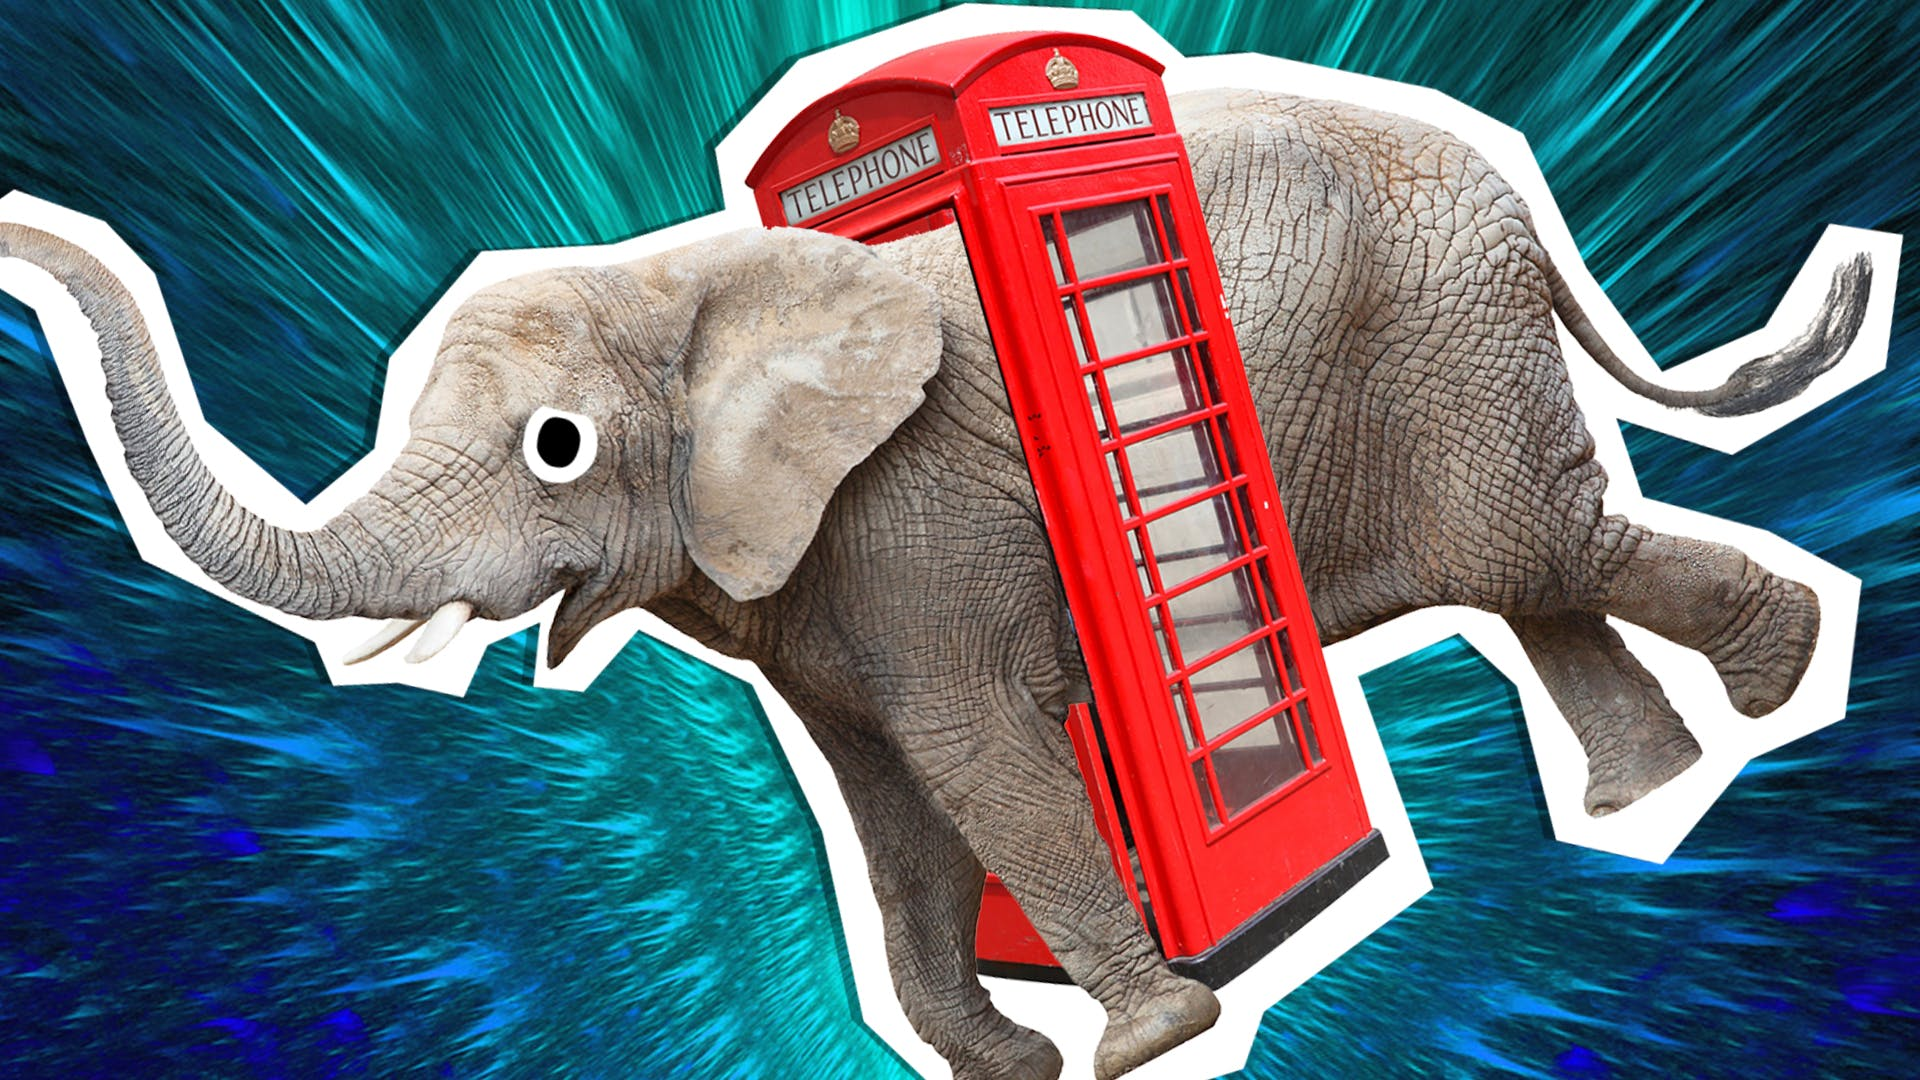 An elephant stuck in a phone booth   What Do You Call An Elephant in a Phone Booth?